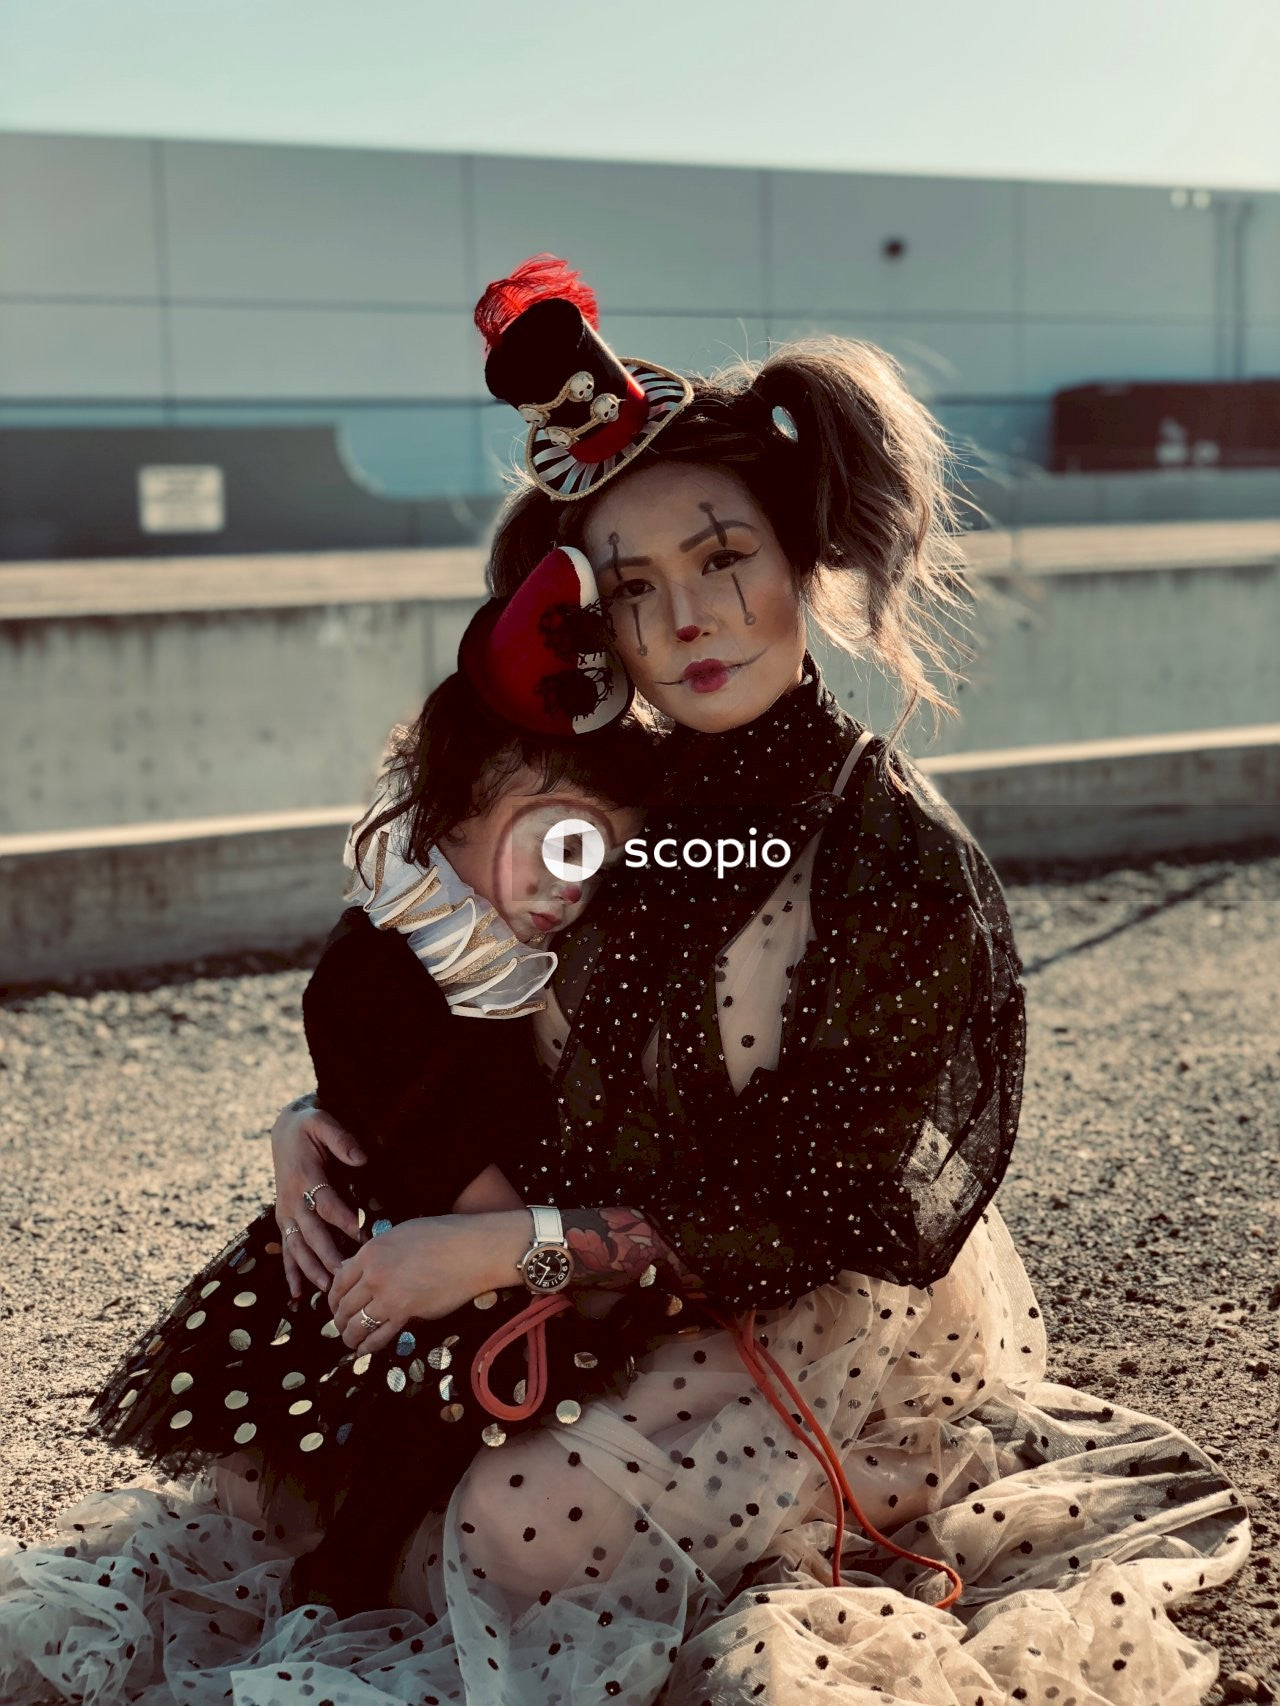 Woman and girl in clown costume sitting on brown ground